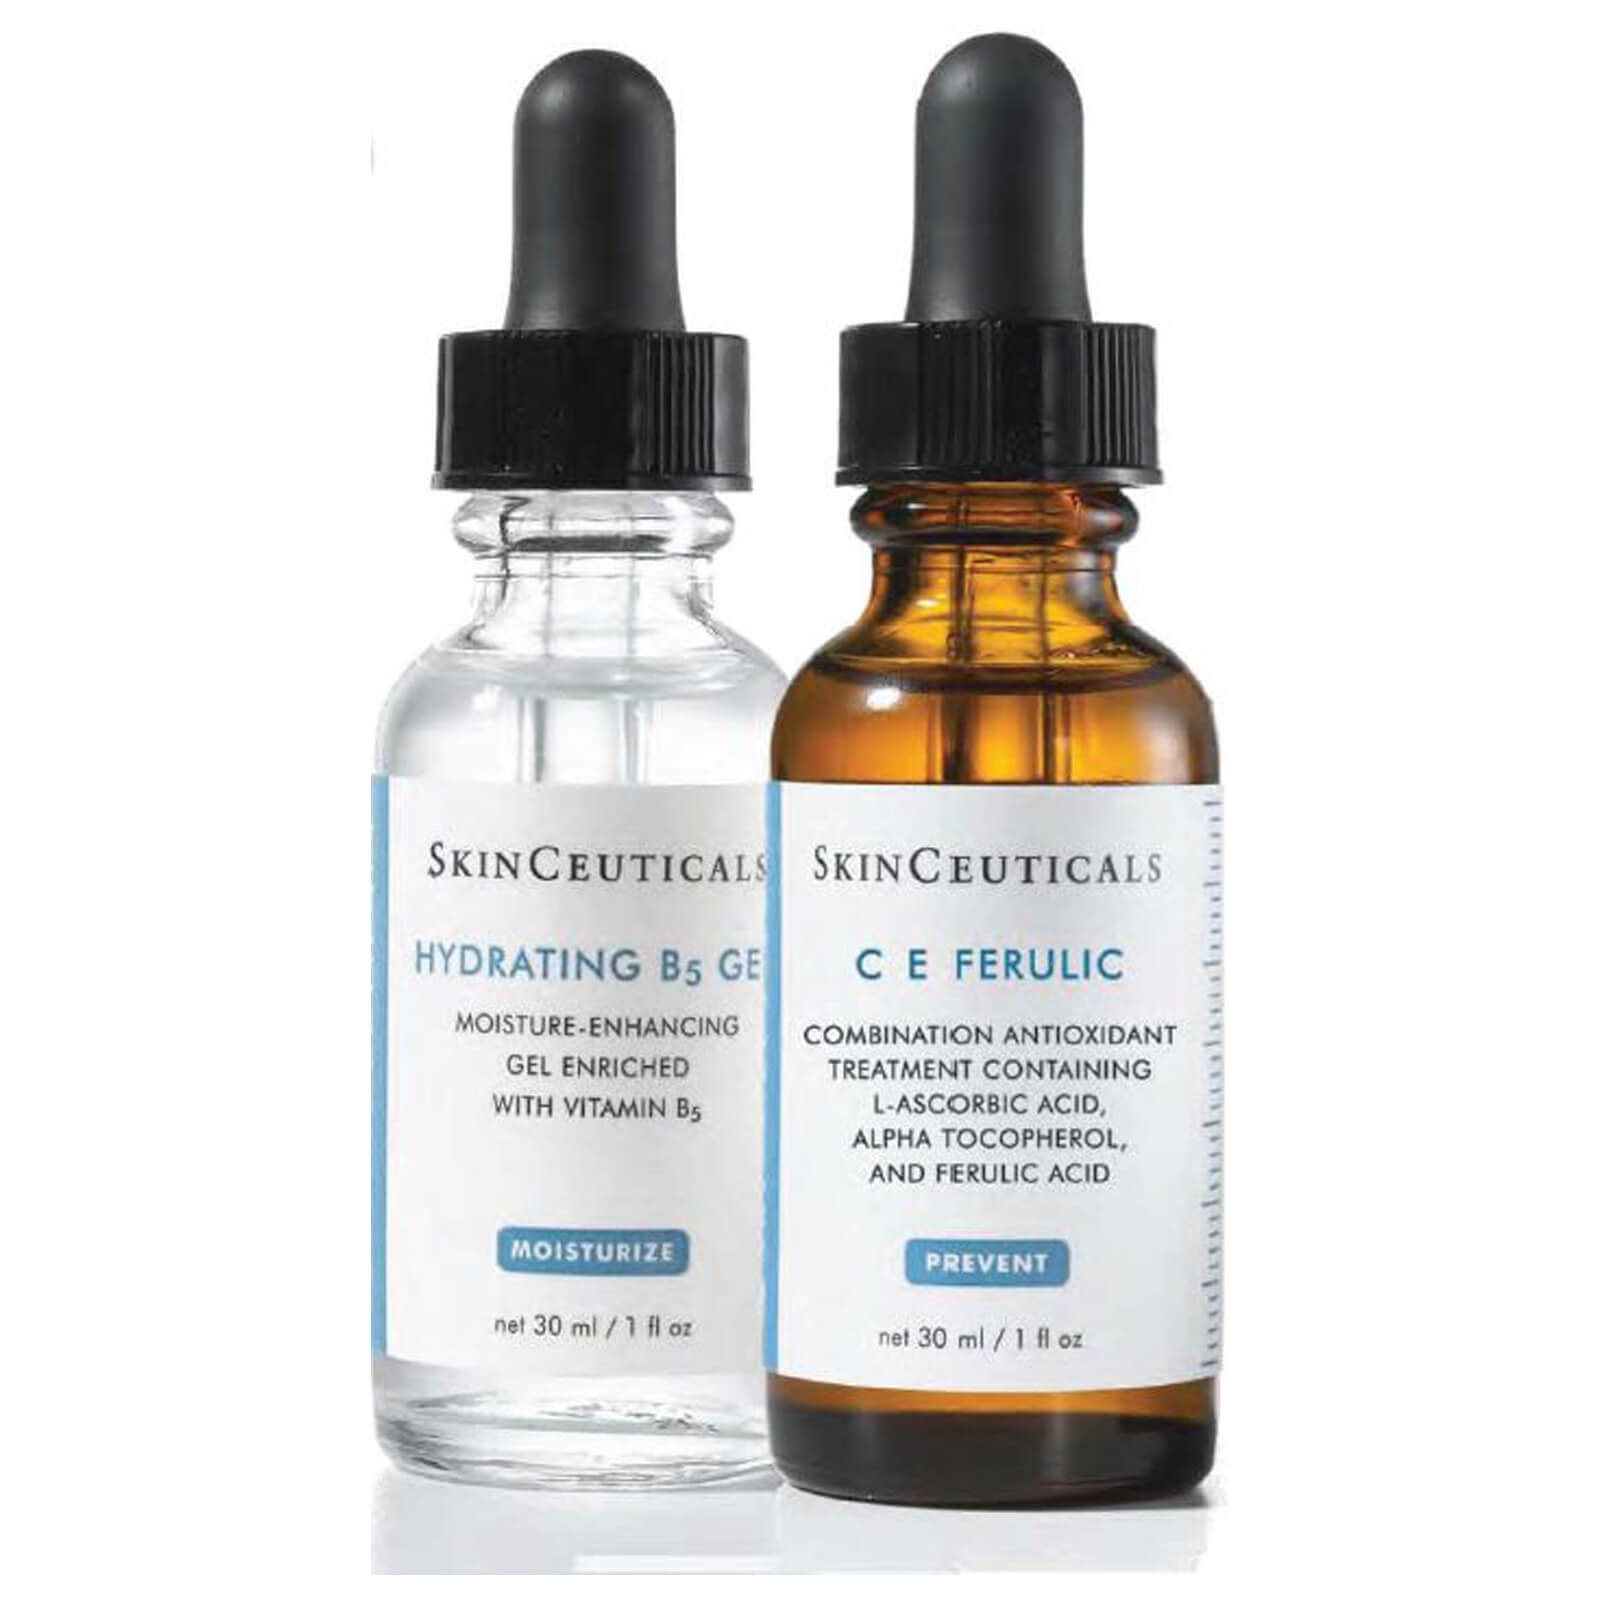 skinceuticals hydrating b5